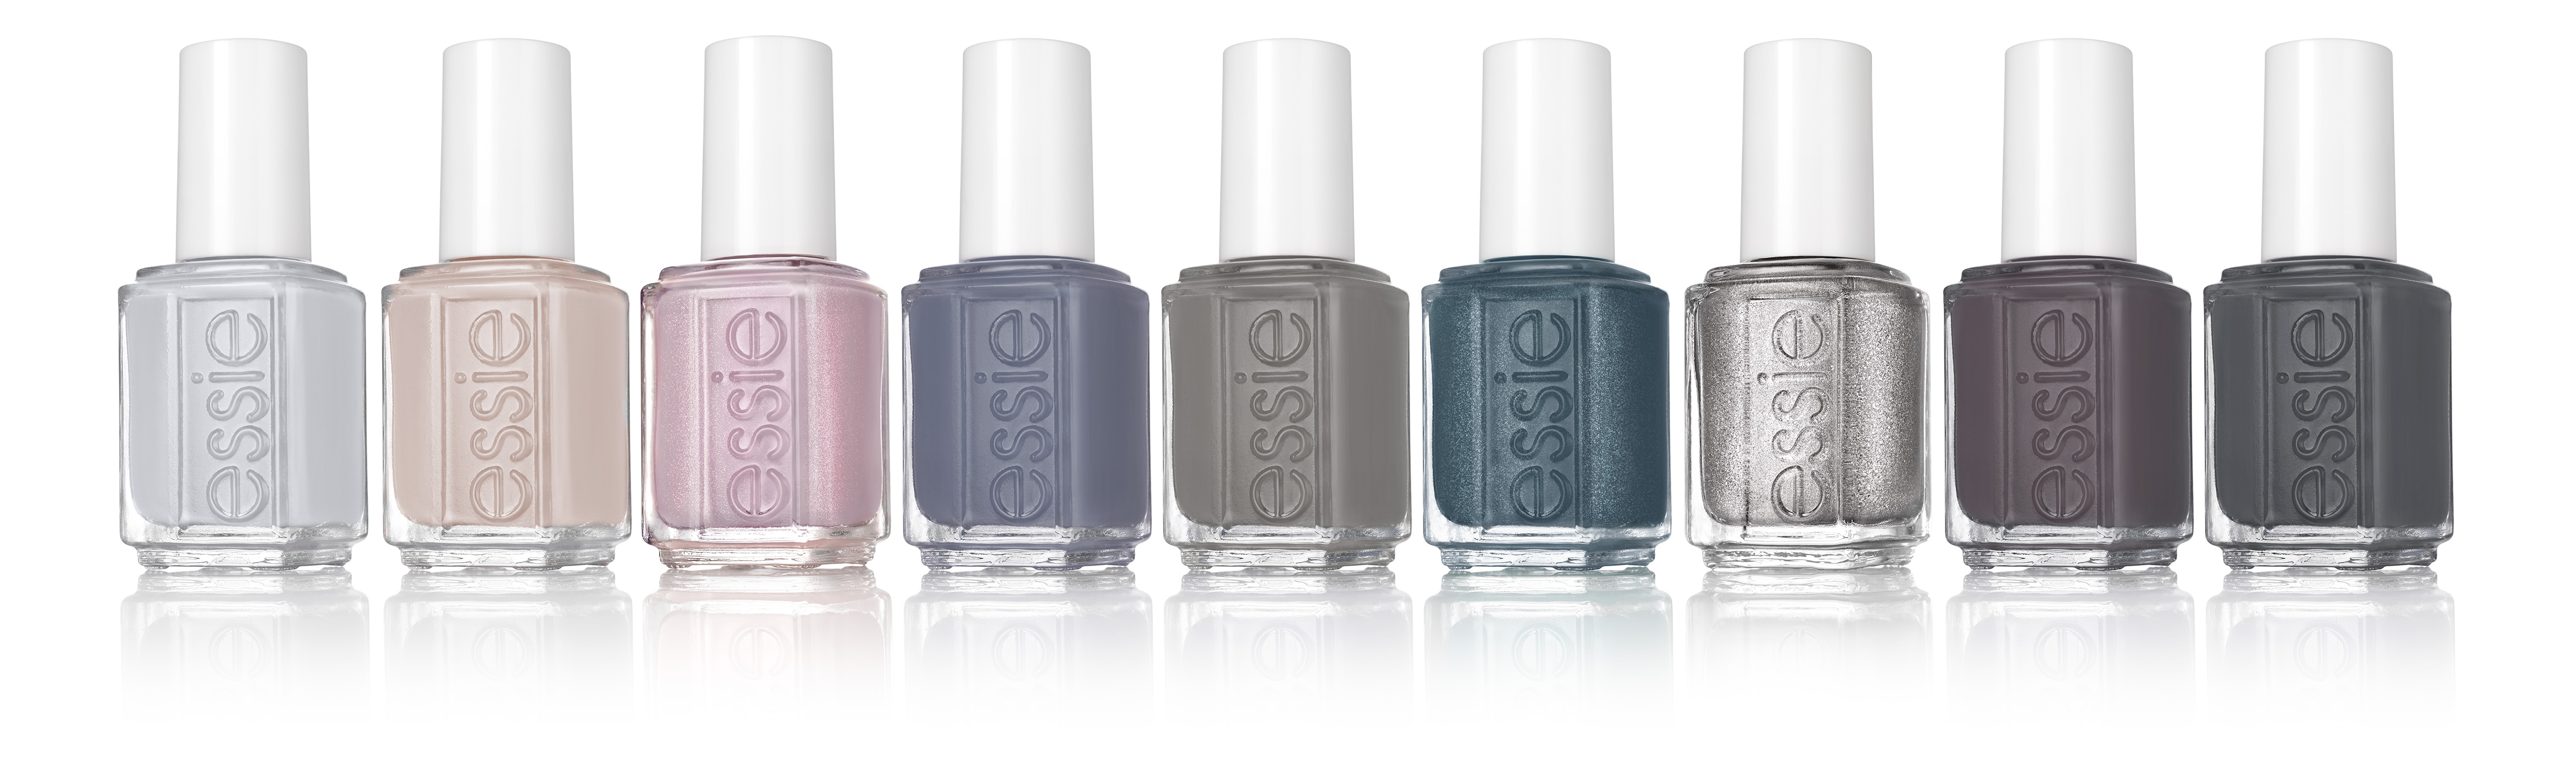 Essie Launches Serene Slate Collection in Enamels and Gels